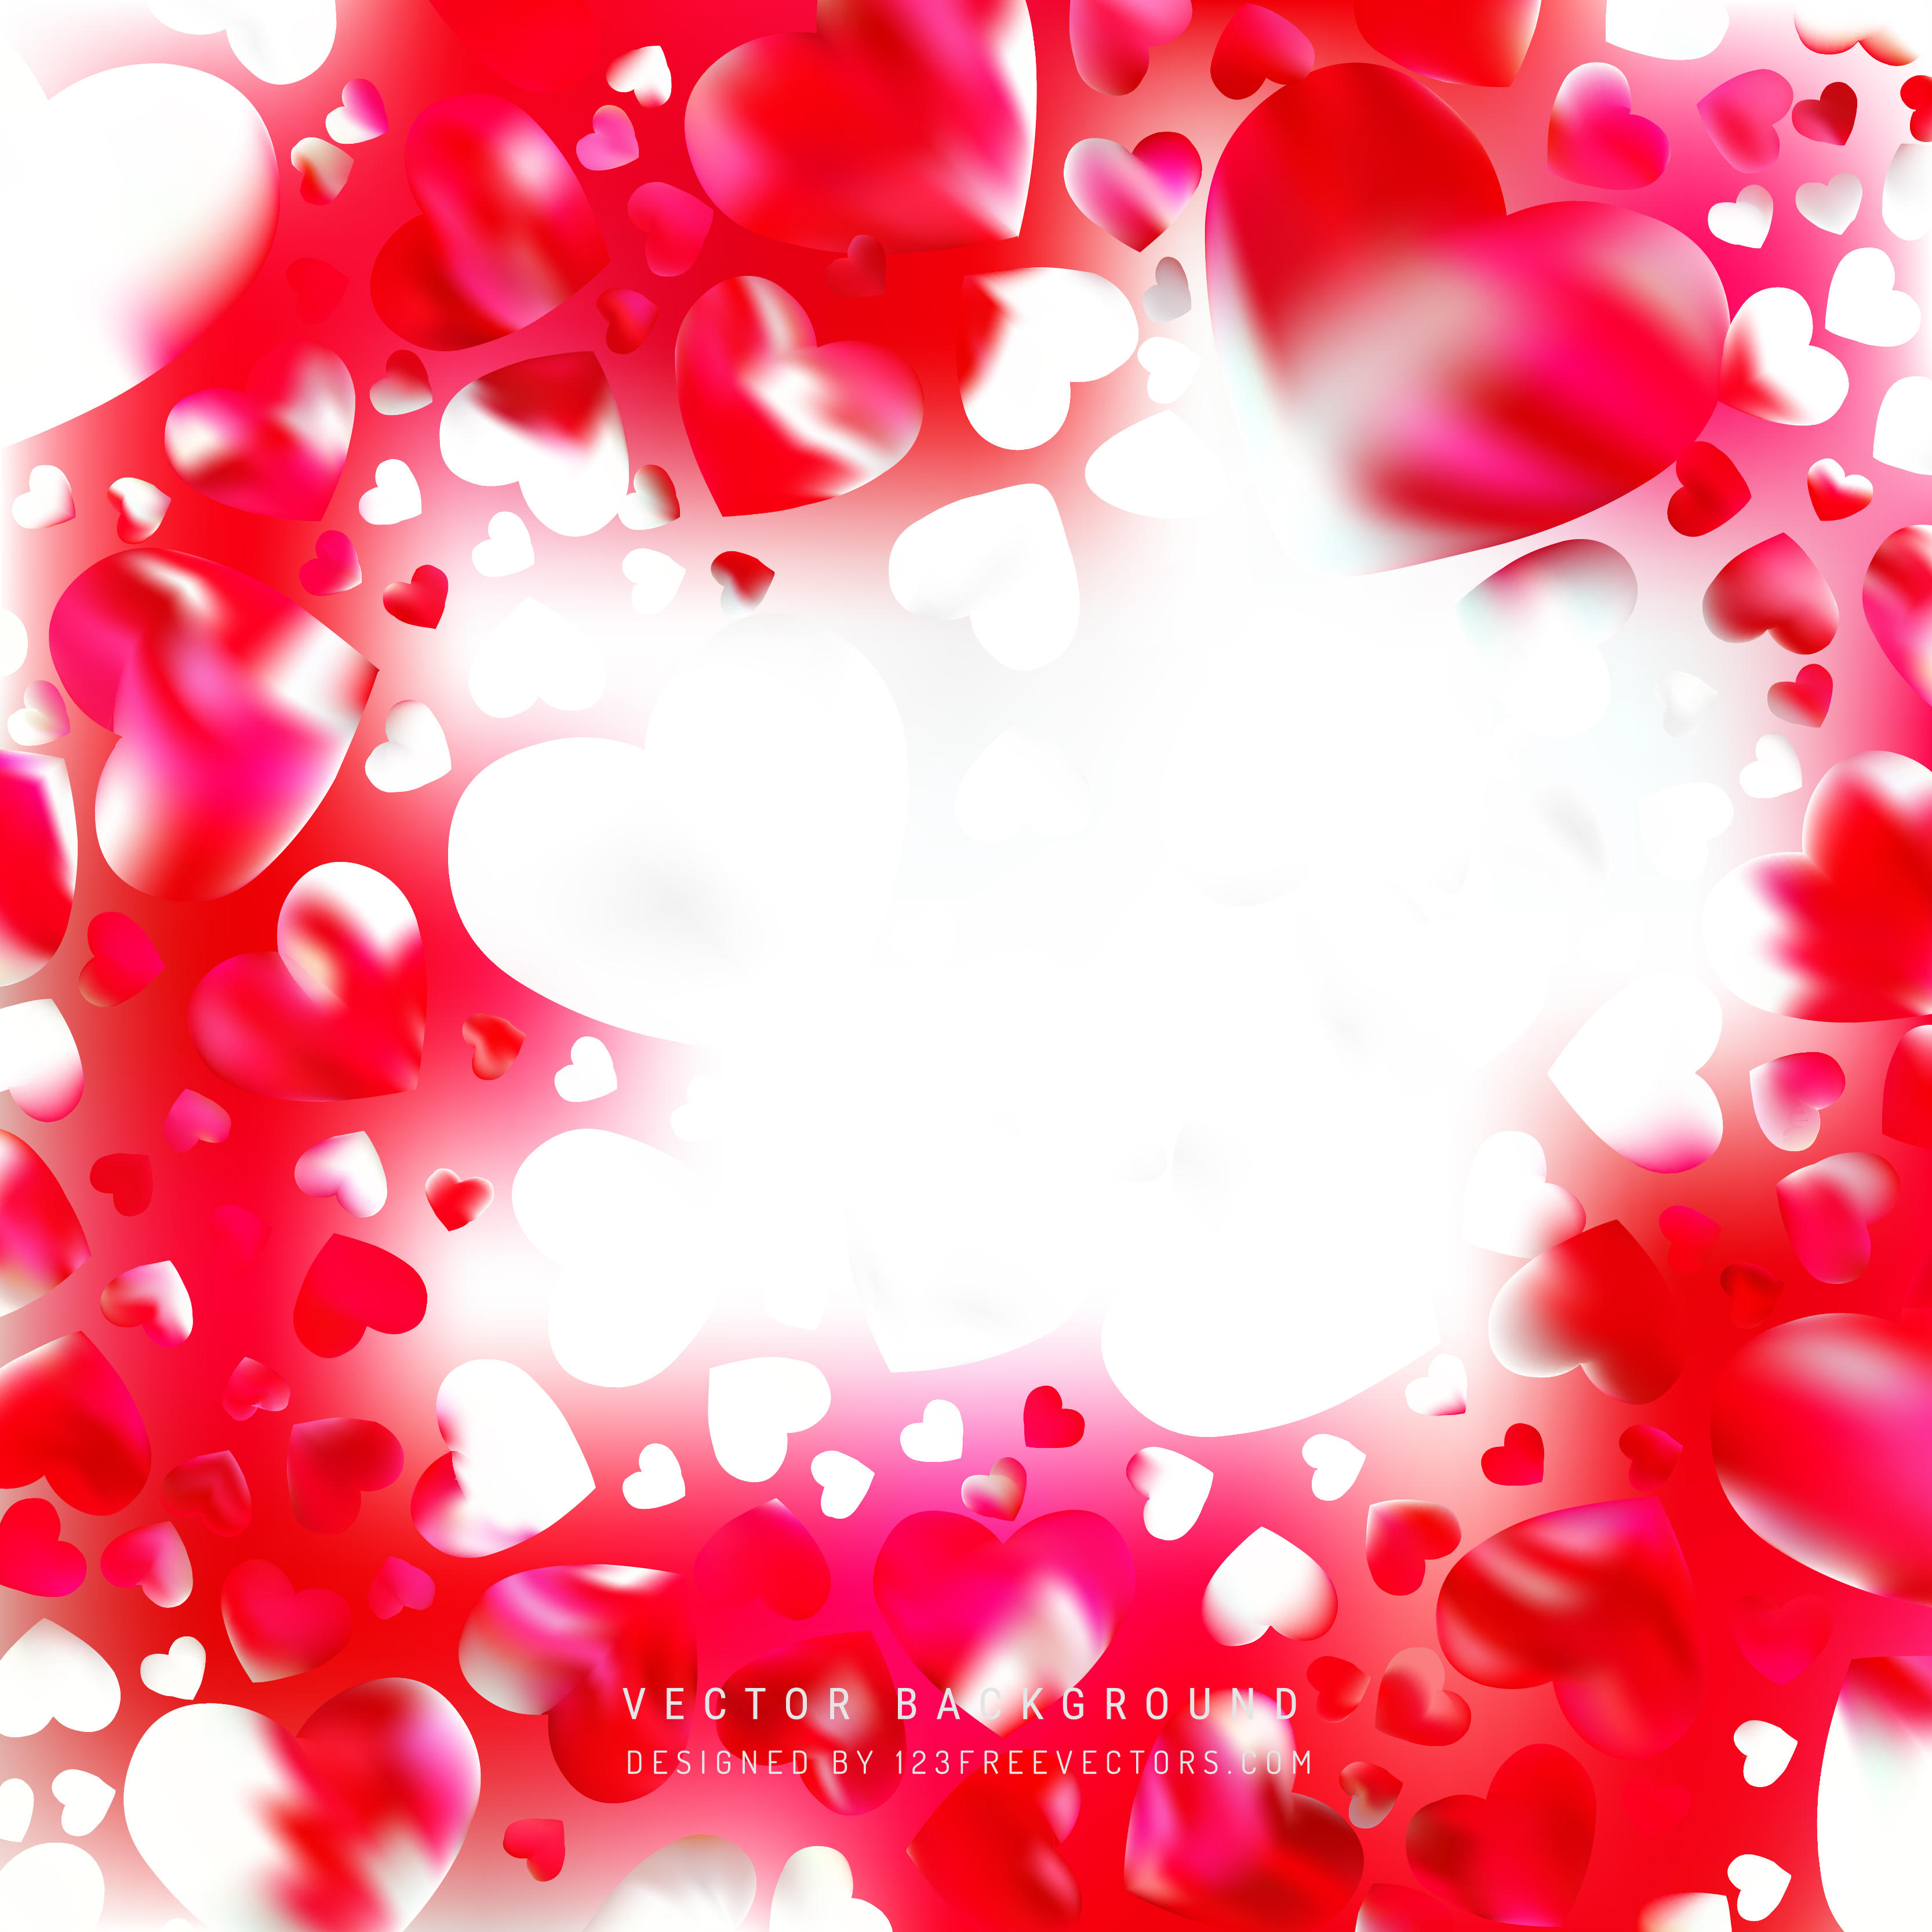 Heart Background Pictures Free Download Best Heart Background